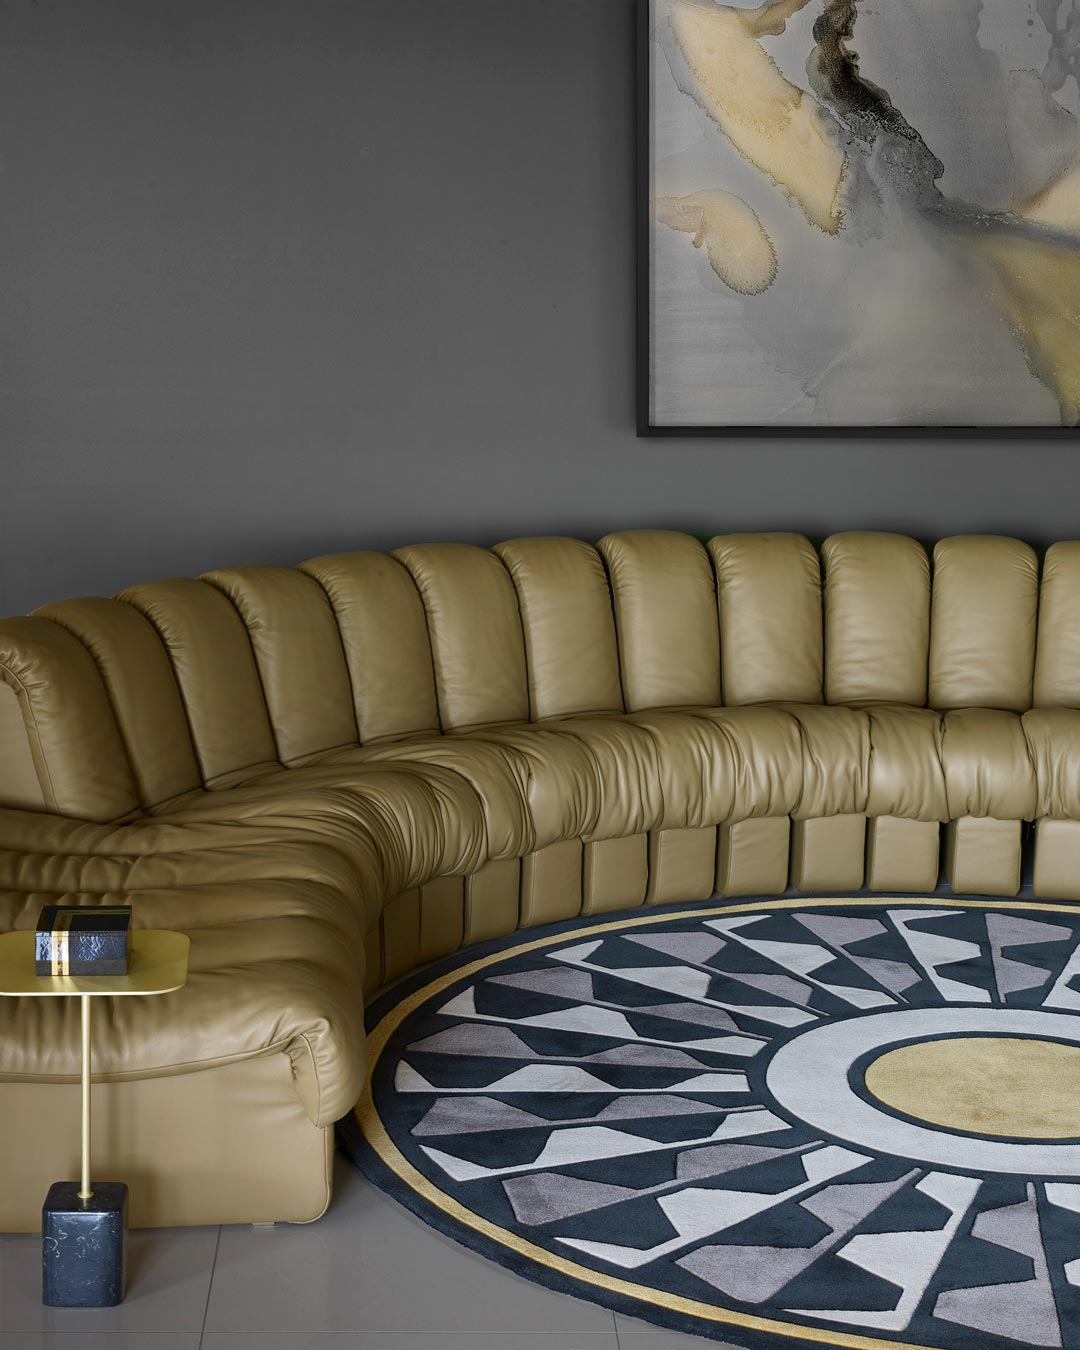 location living room shot of central park round rug by greg natale